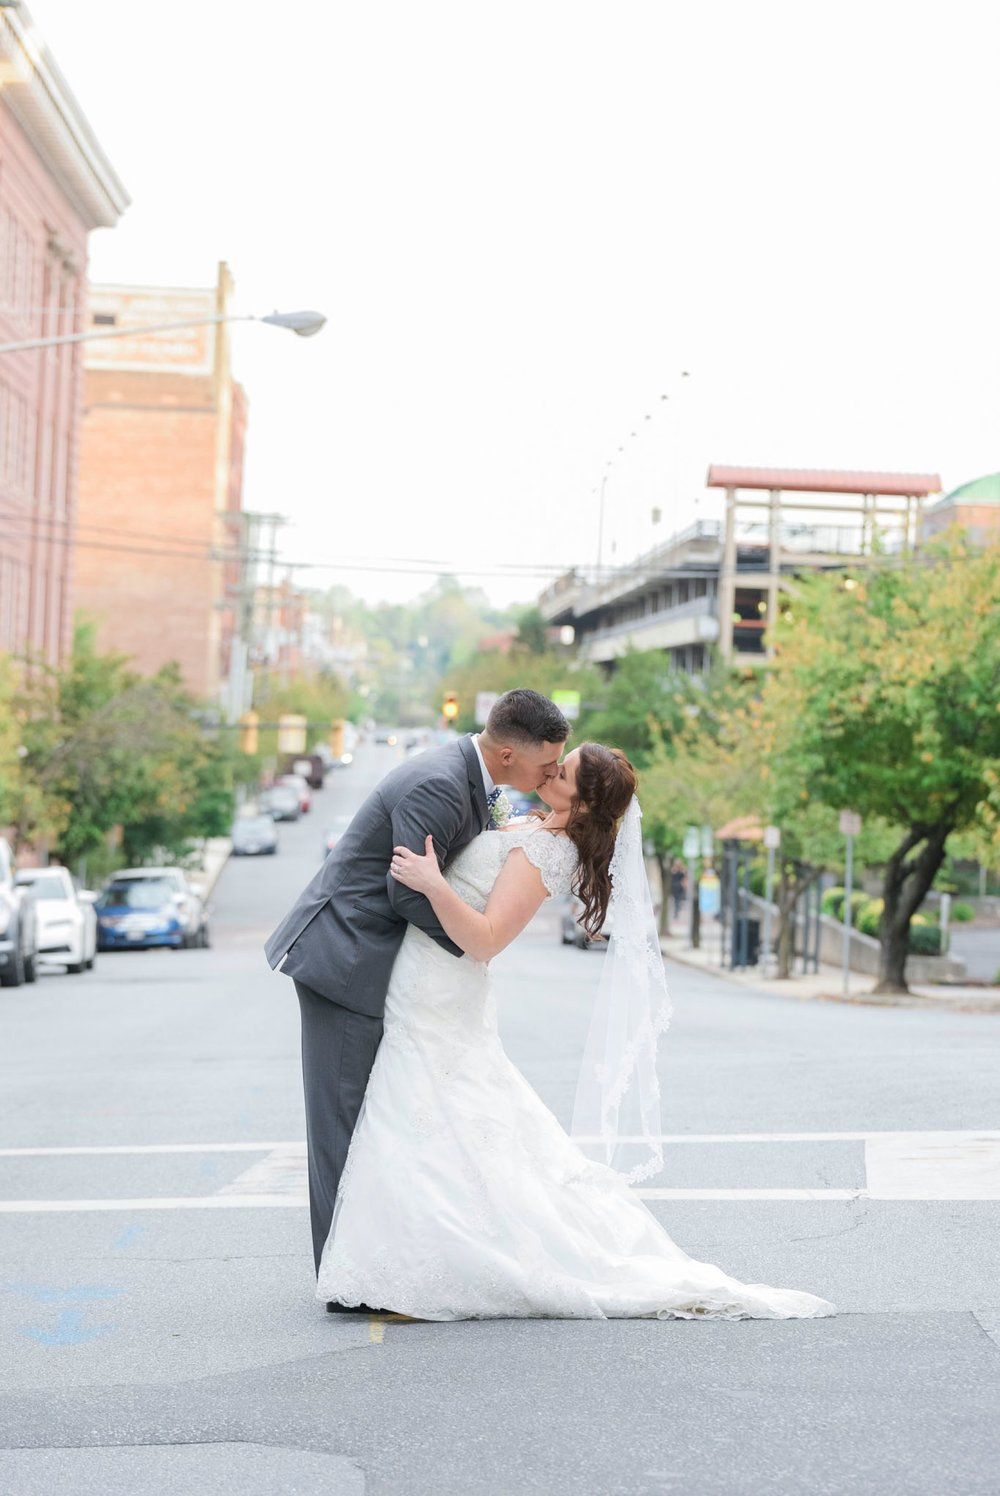 Trescaon8th_DowntownLynchburg_Virginiaweddingphotographer 77.jpg